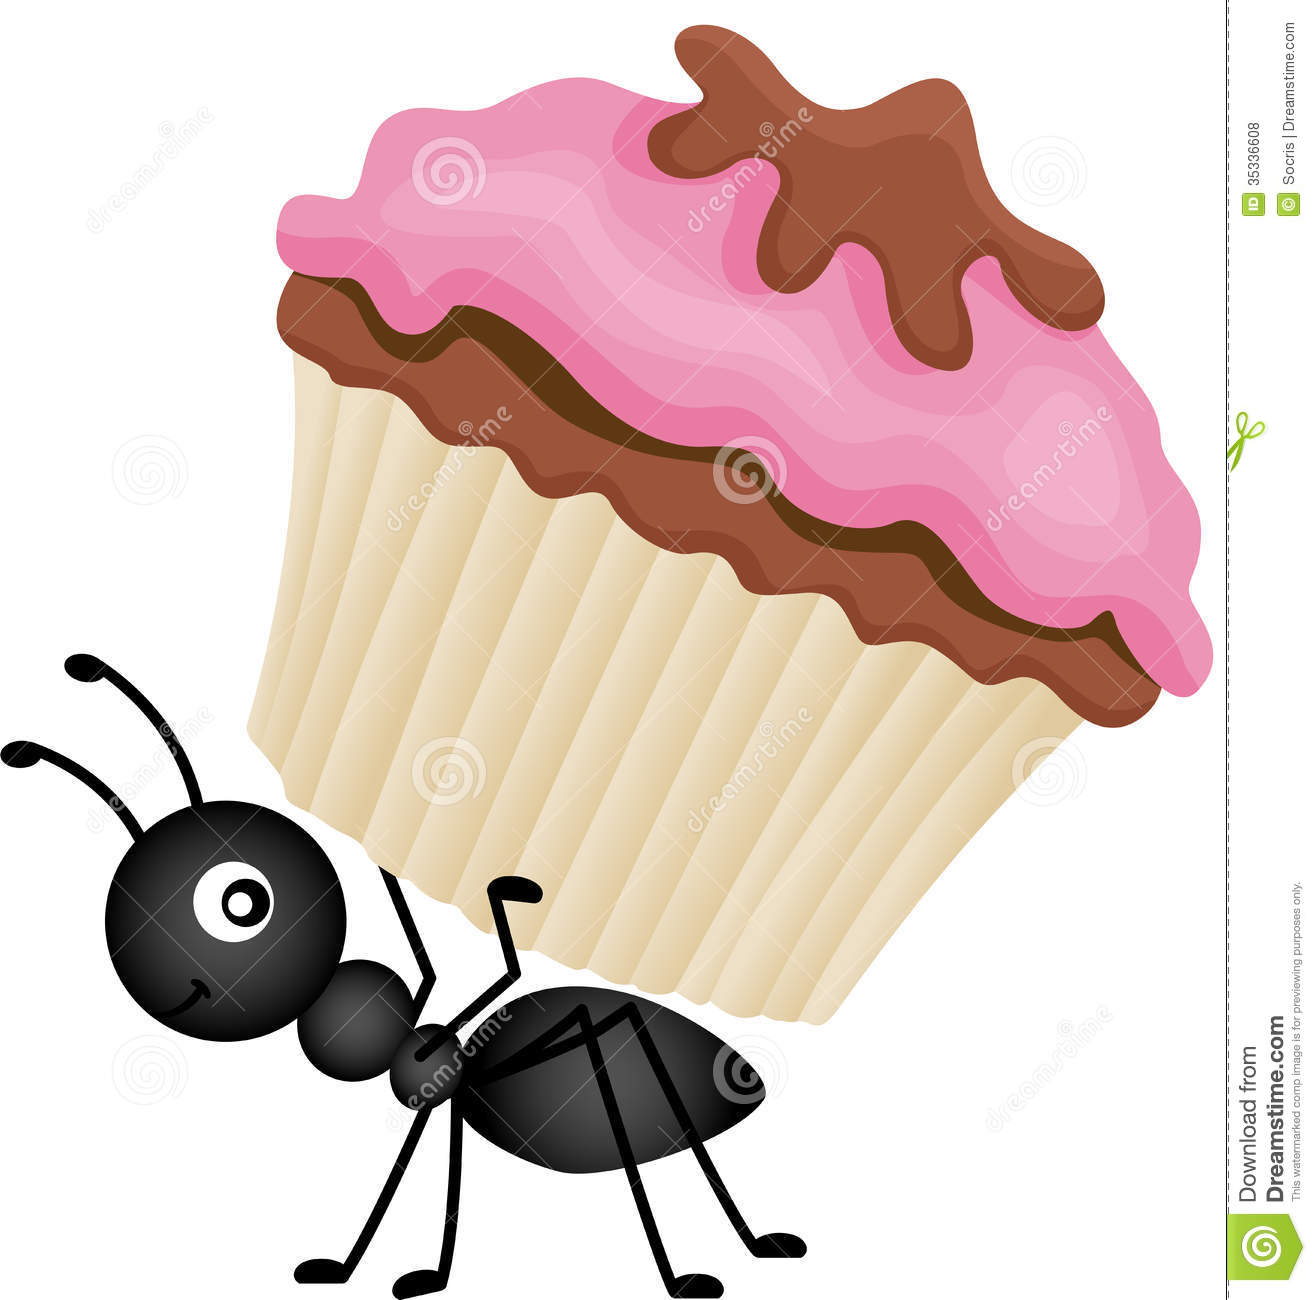 Ant clipart artist Cake Clipart  Ants Carrying